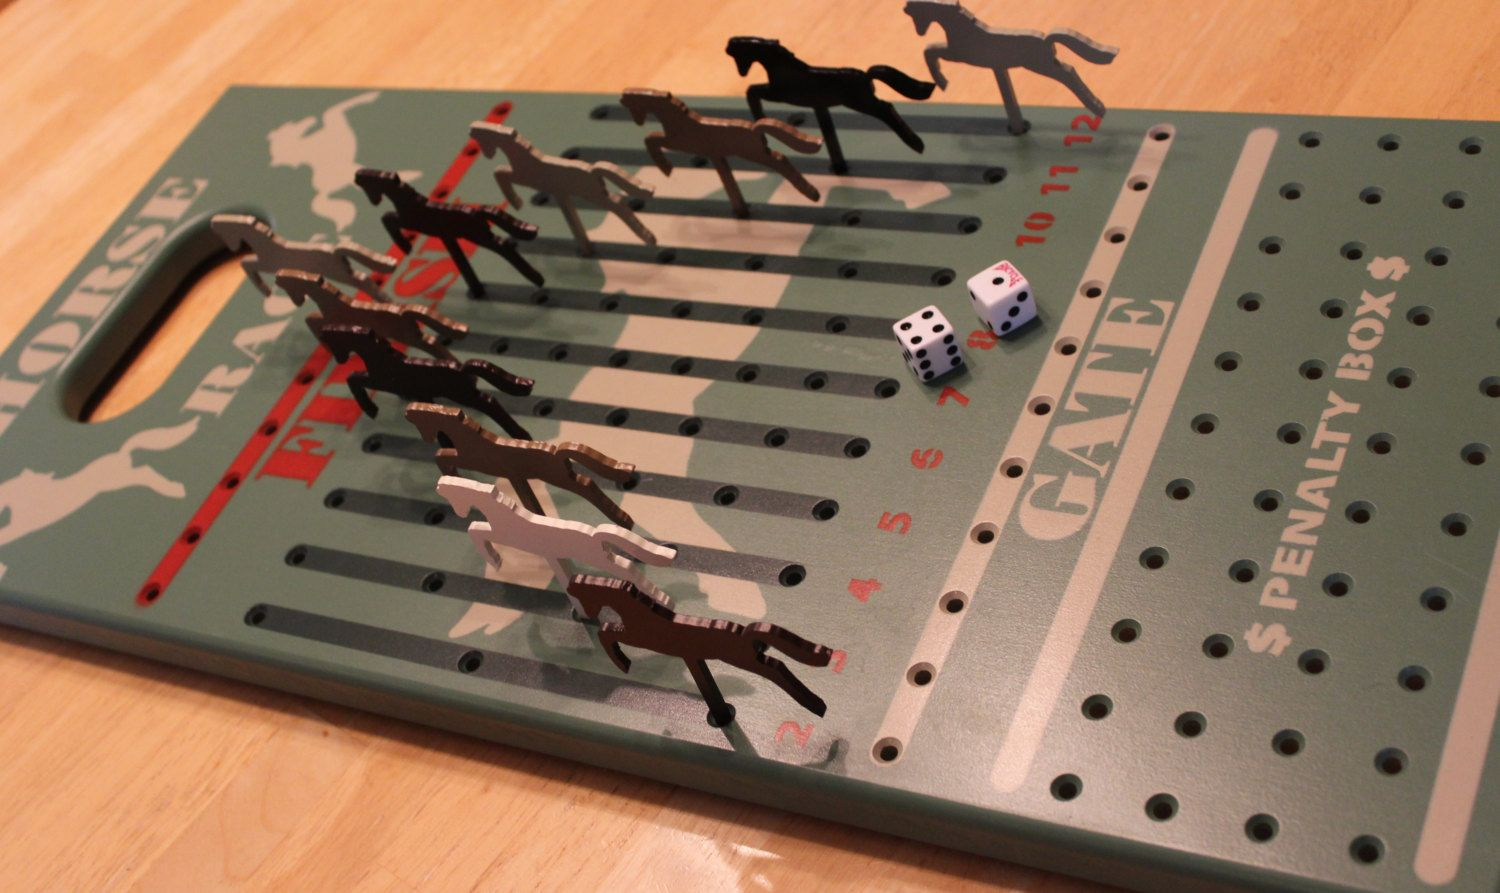 Horse Race Game (With images) Horse race game, Wooden games